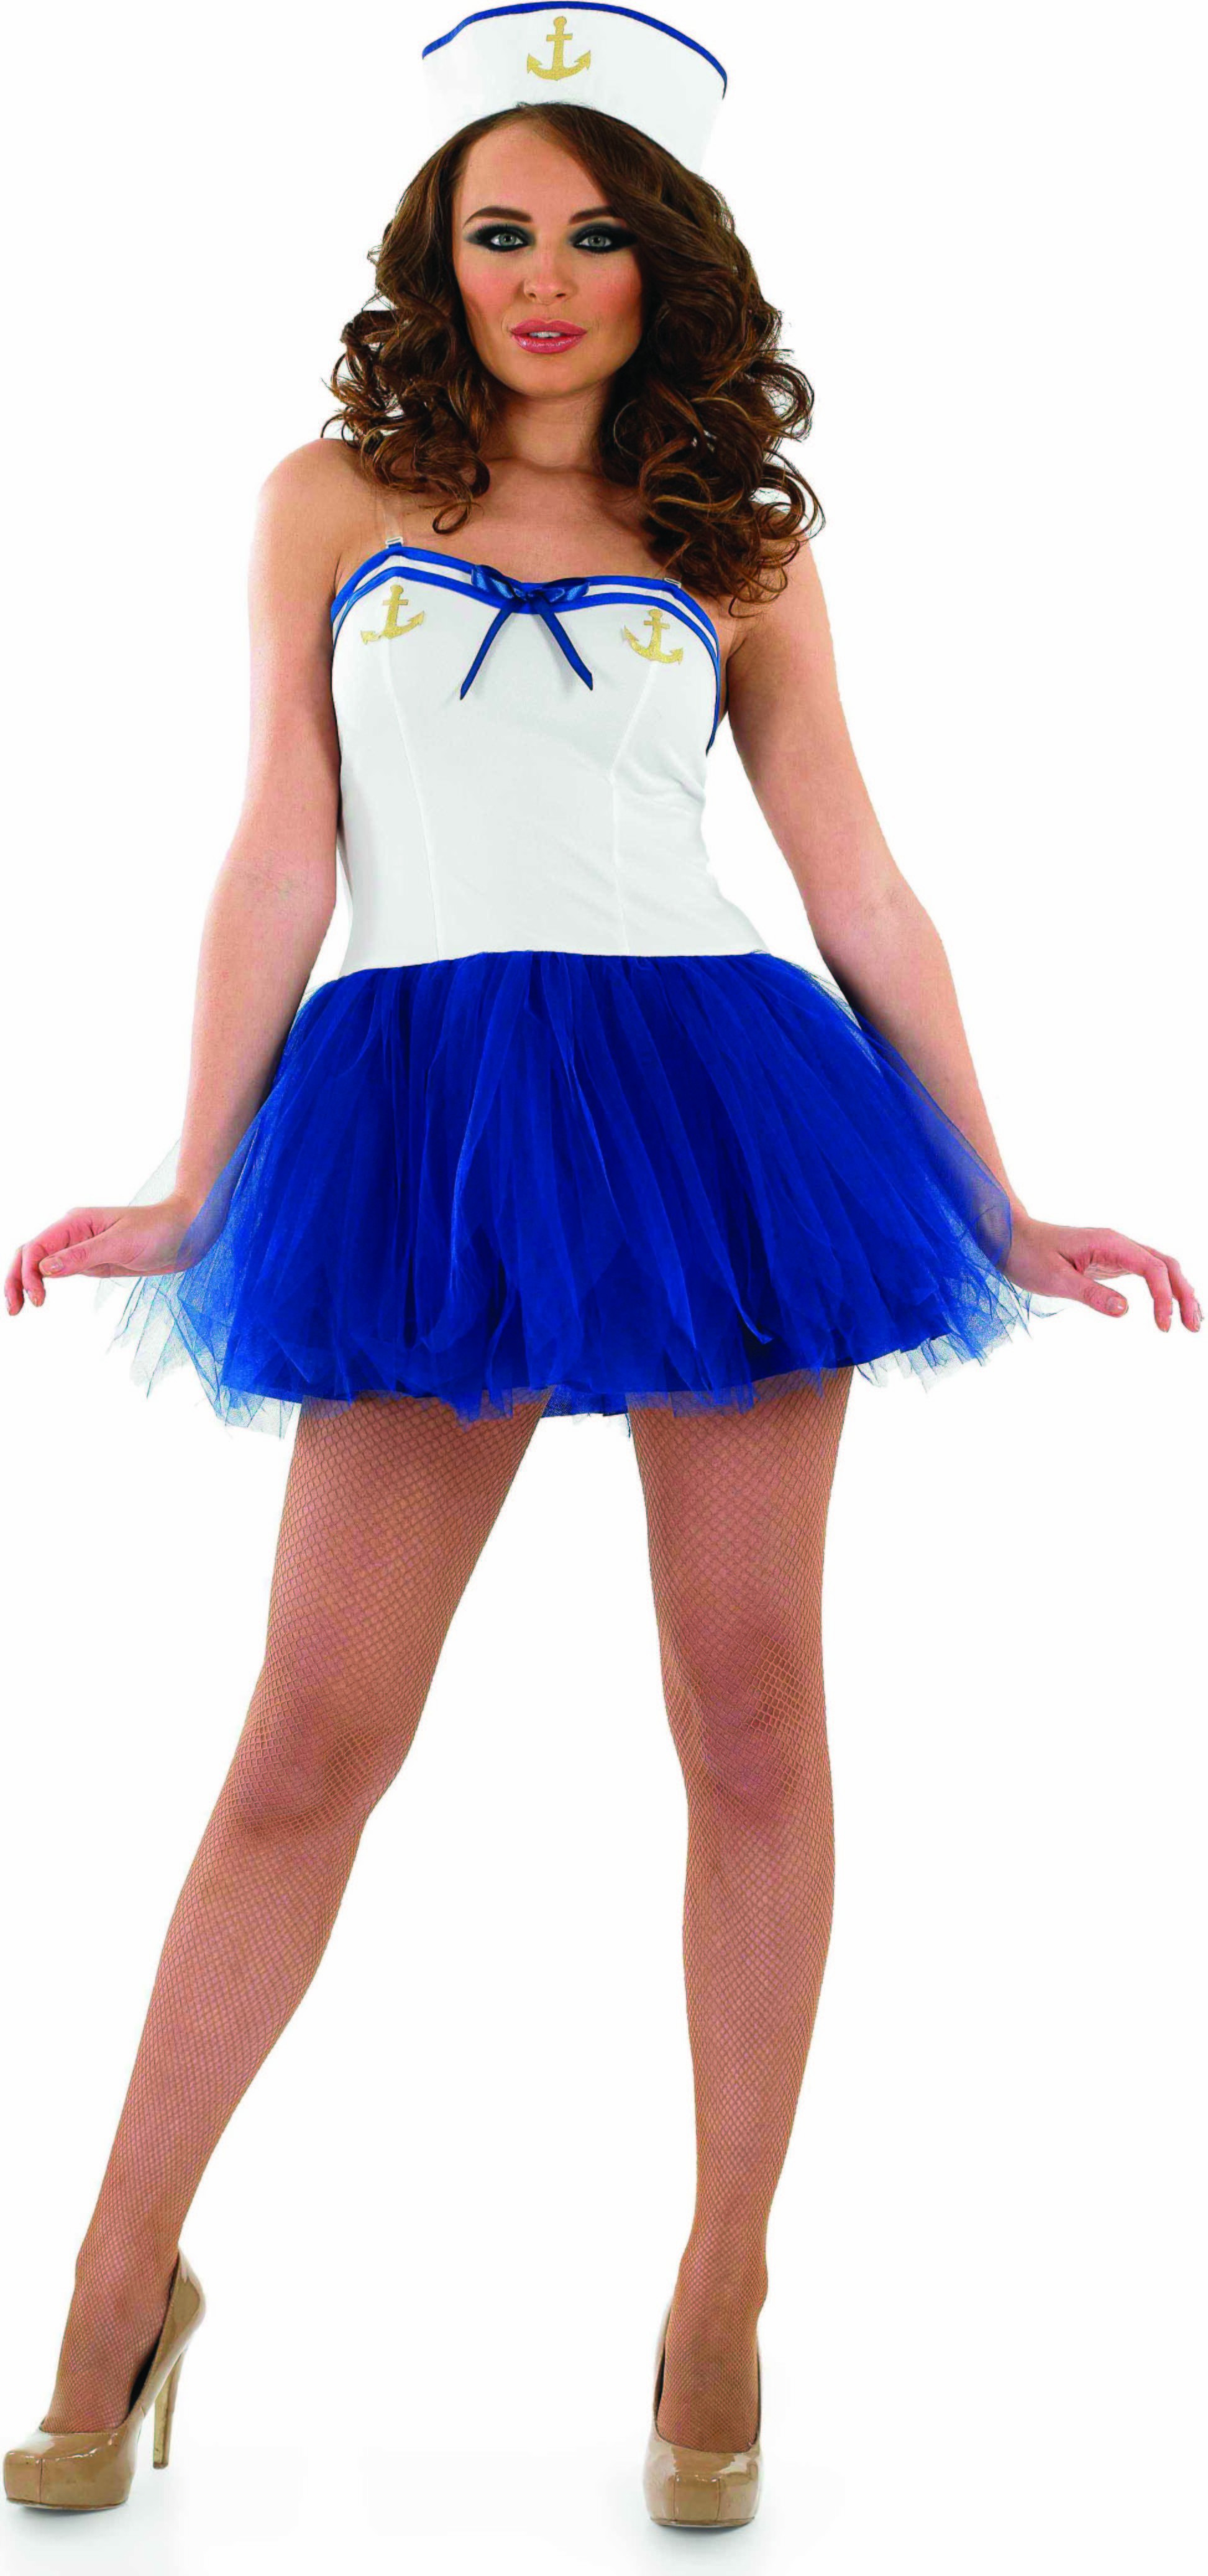 Ladies Sexy Tutu Sailor Girl Tutus - (Blue, White)